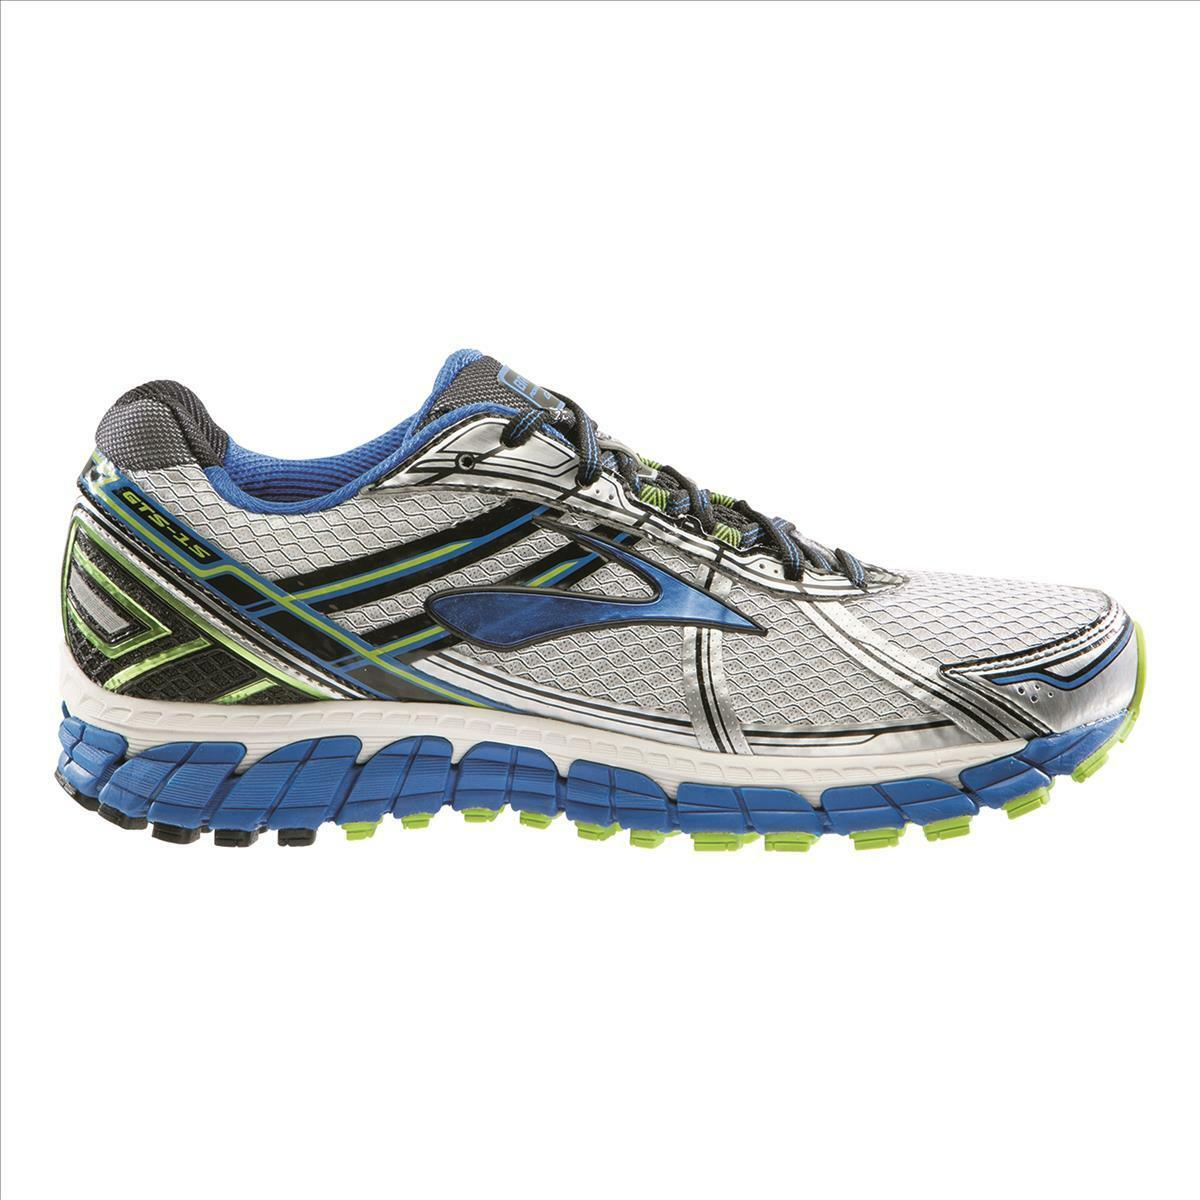 Brooks Adrenaline GTS 15 Mens Runner (D) (168)  + Free Delivery Australia Wide